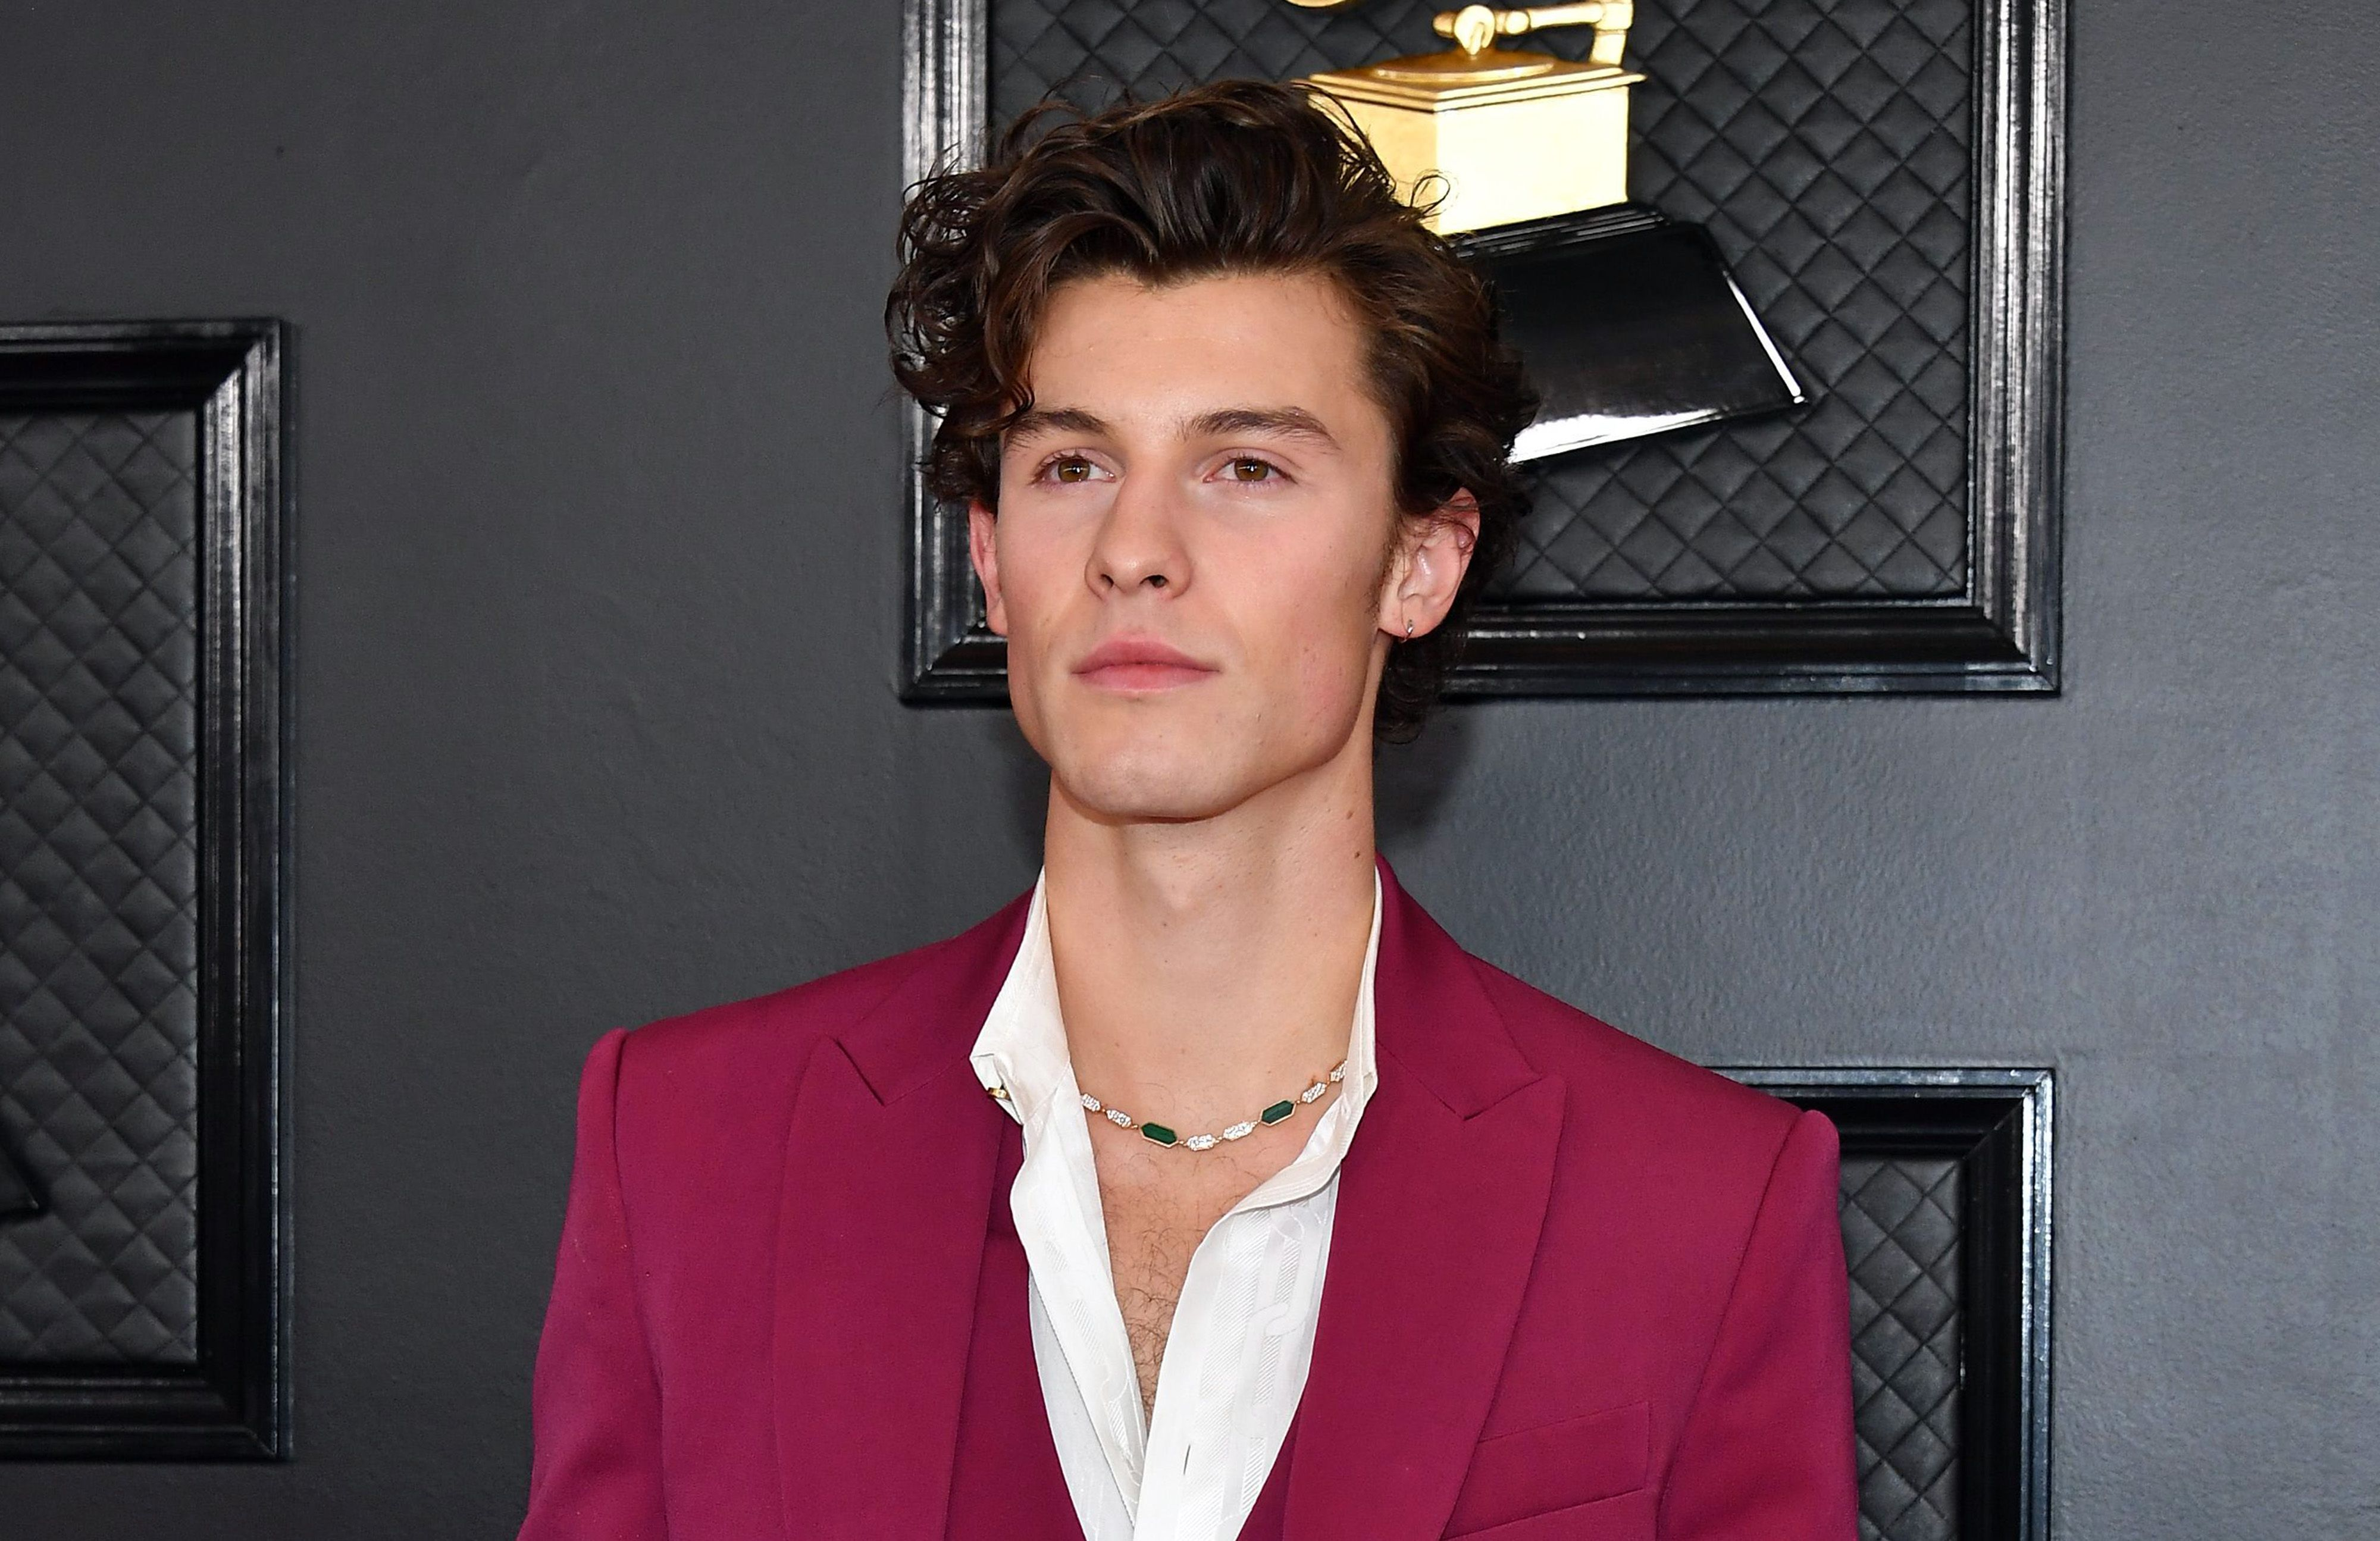 shawn-mendes-attends-the-62nd-annual-gra